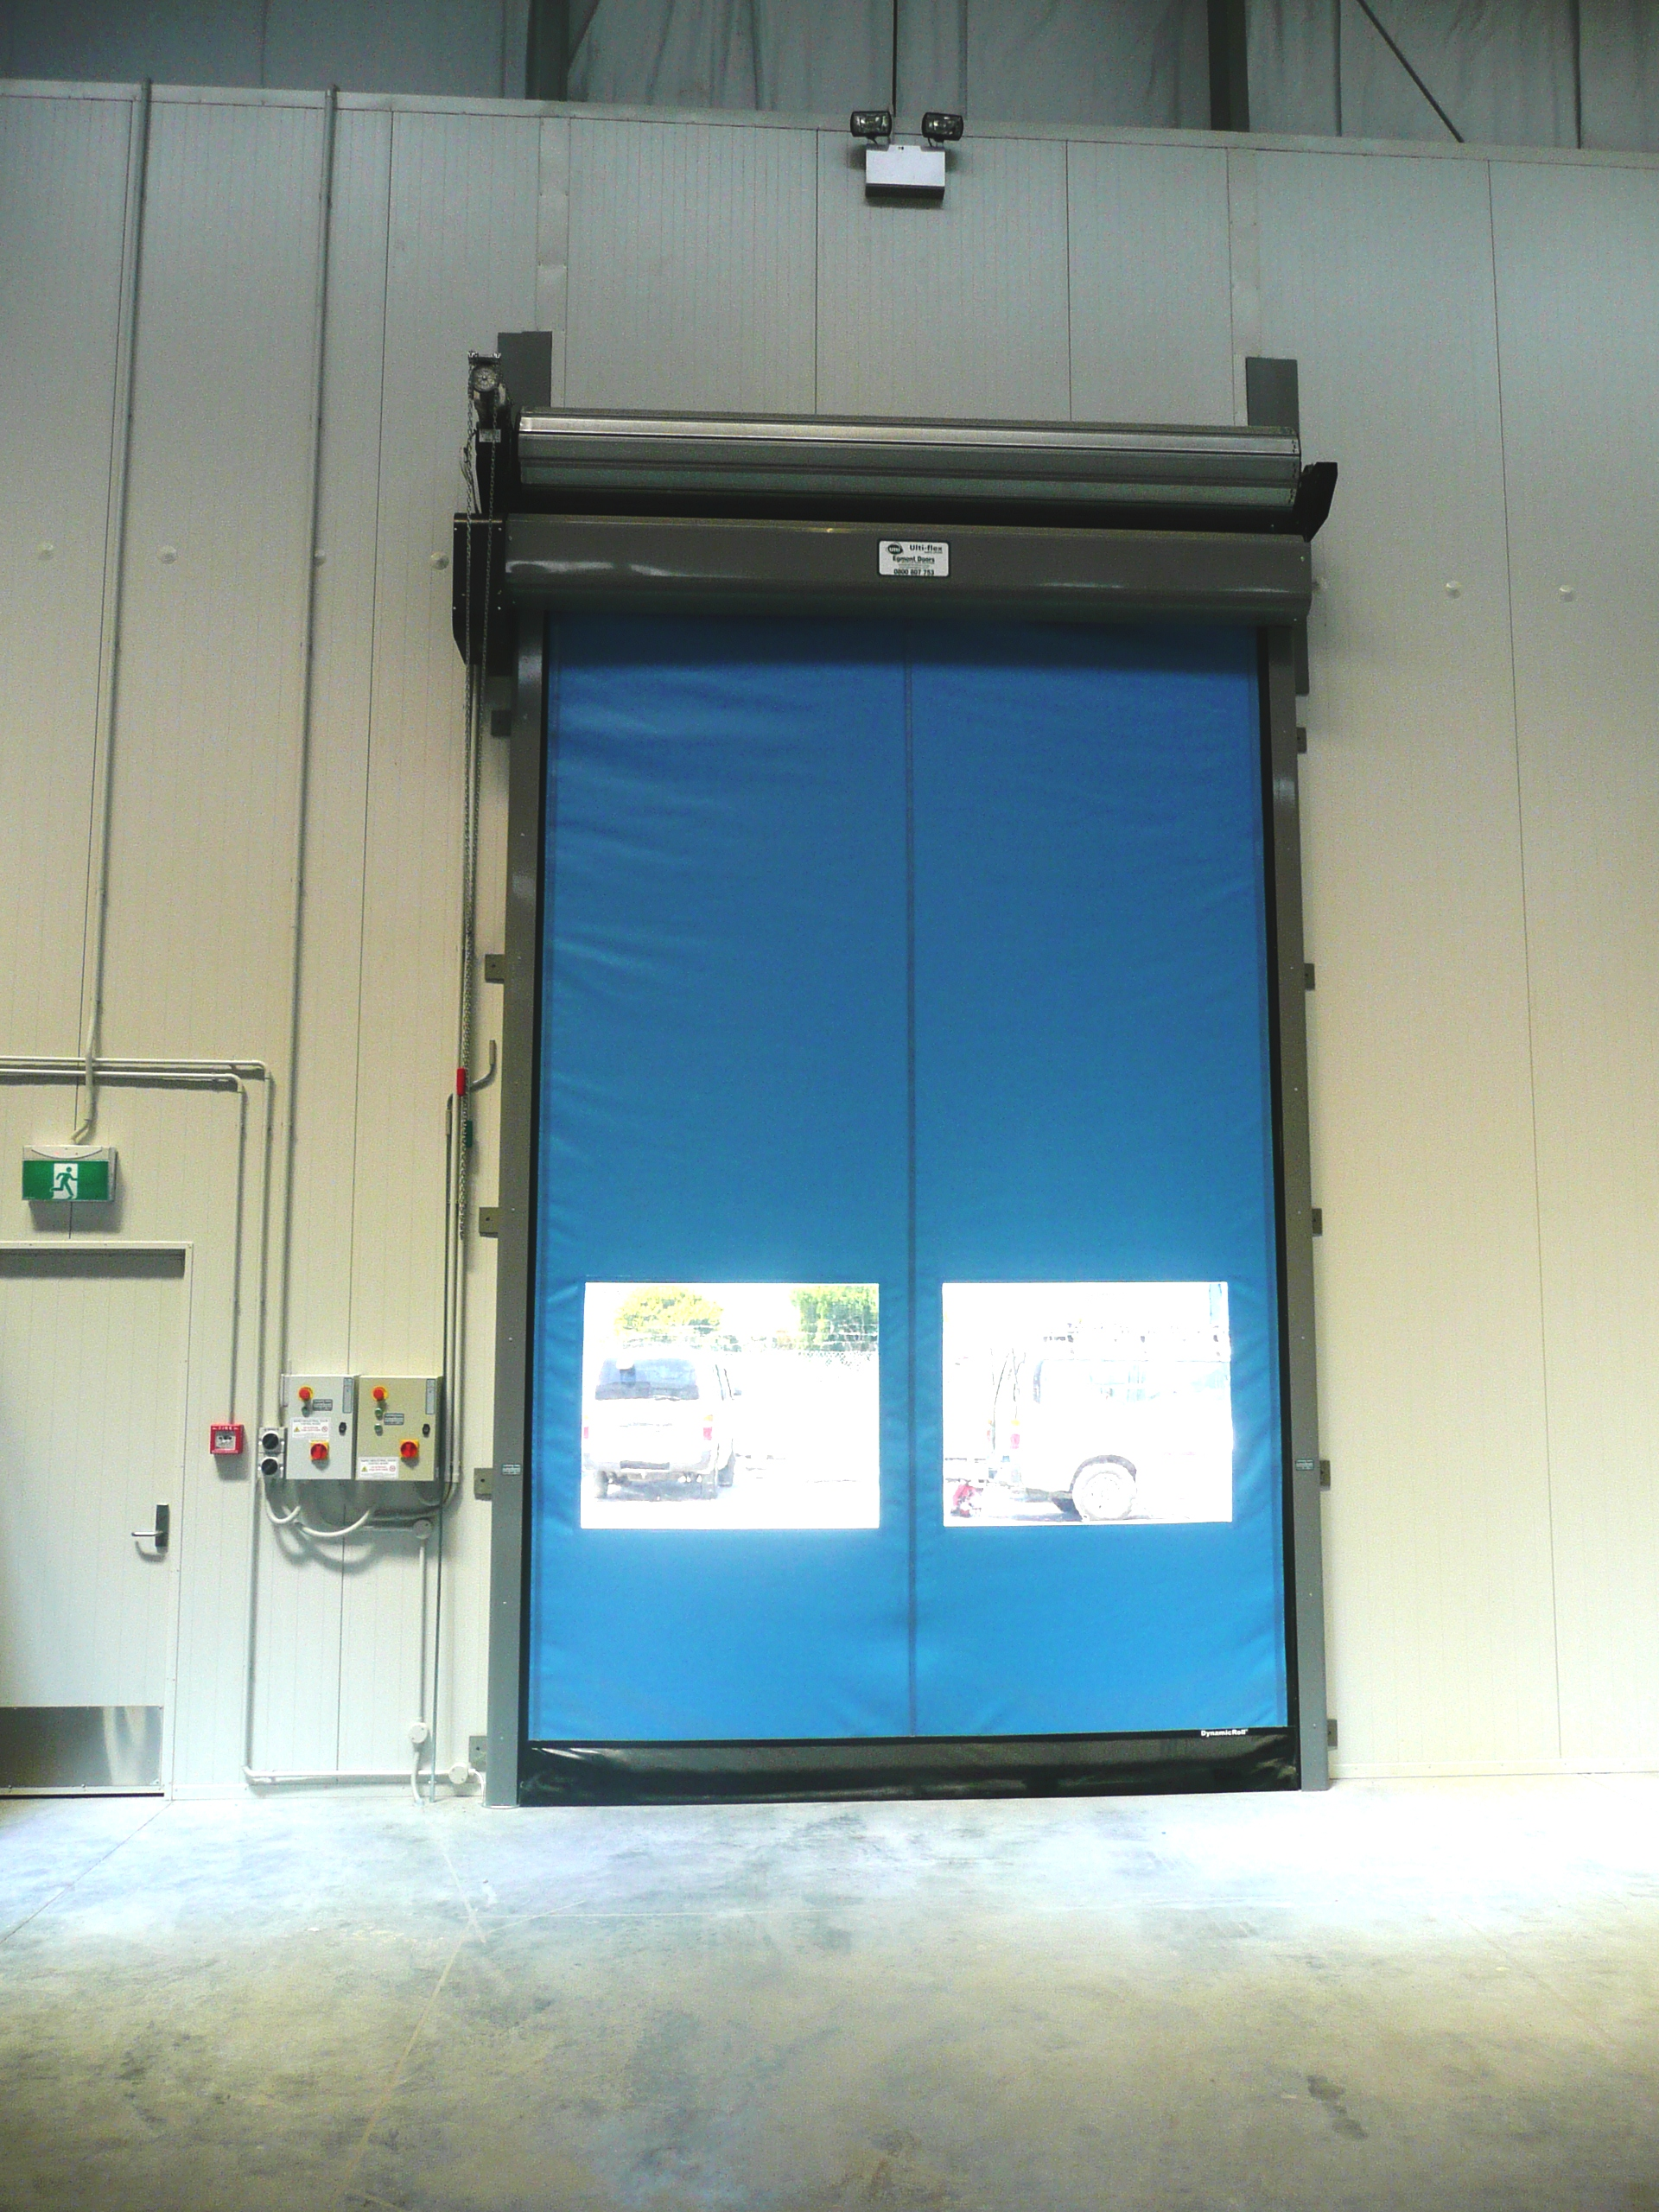 Thermichroll and Ulti Roll Komby Doors - Bidvest Whakatu (6)